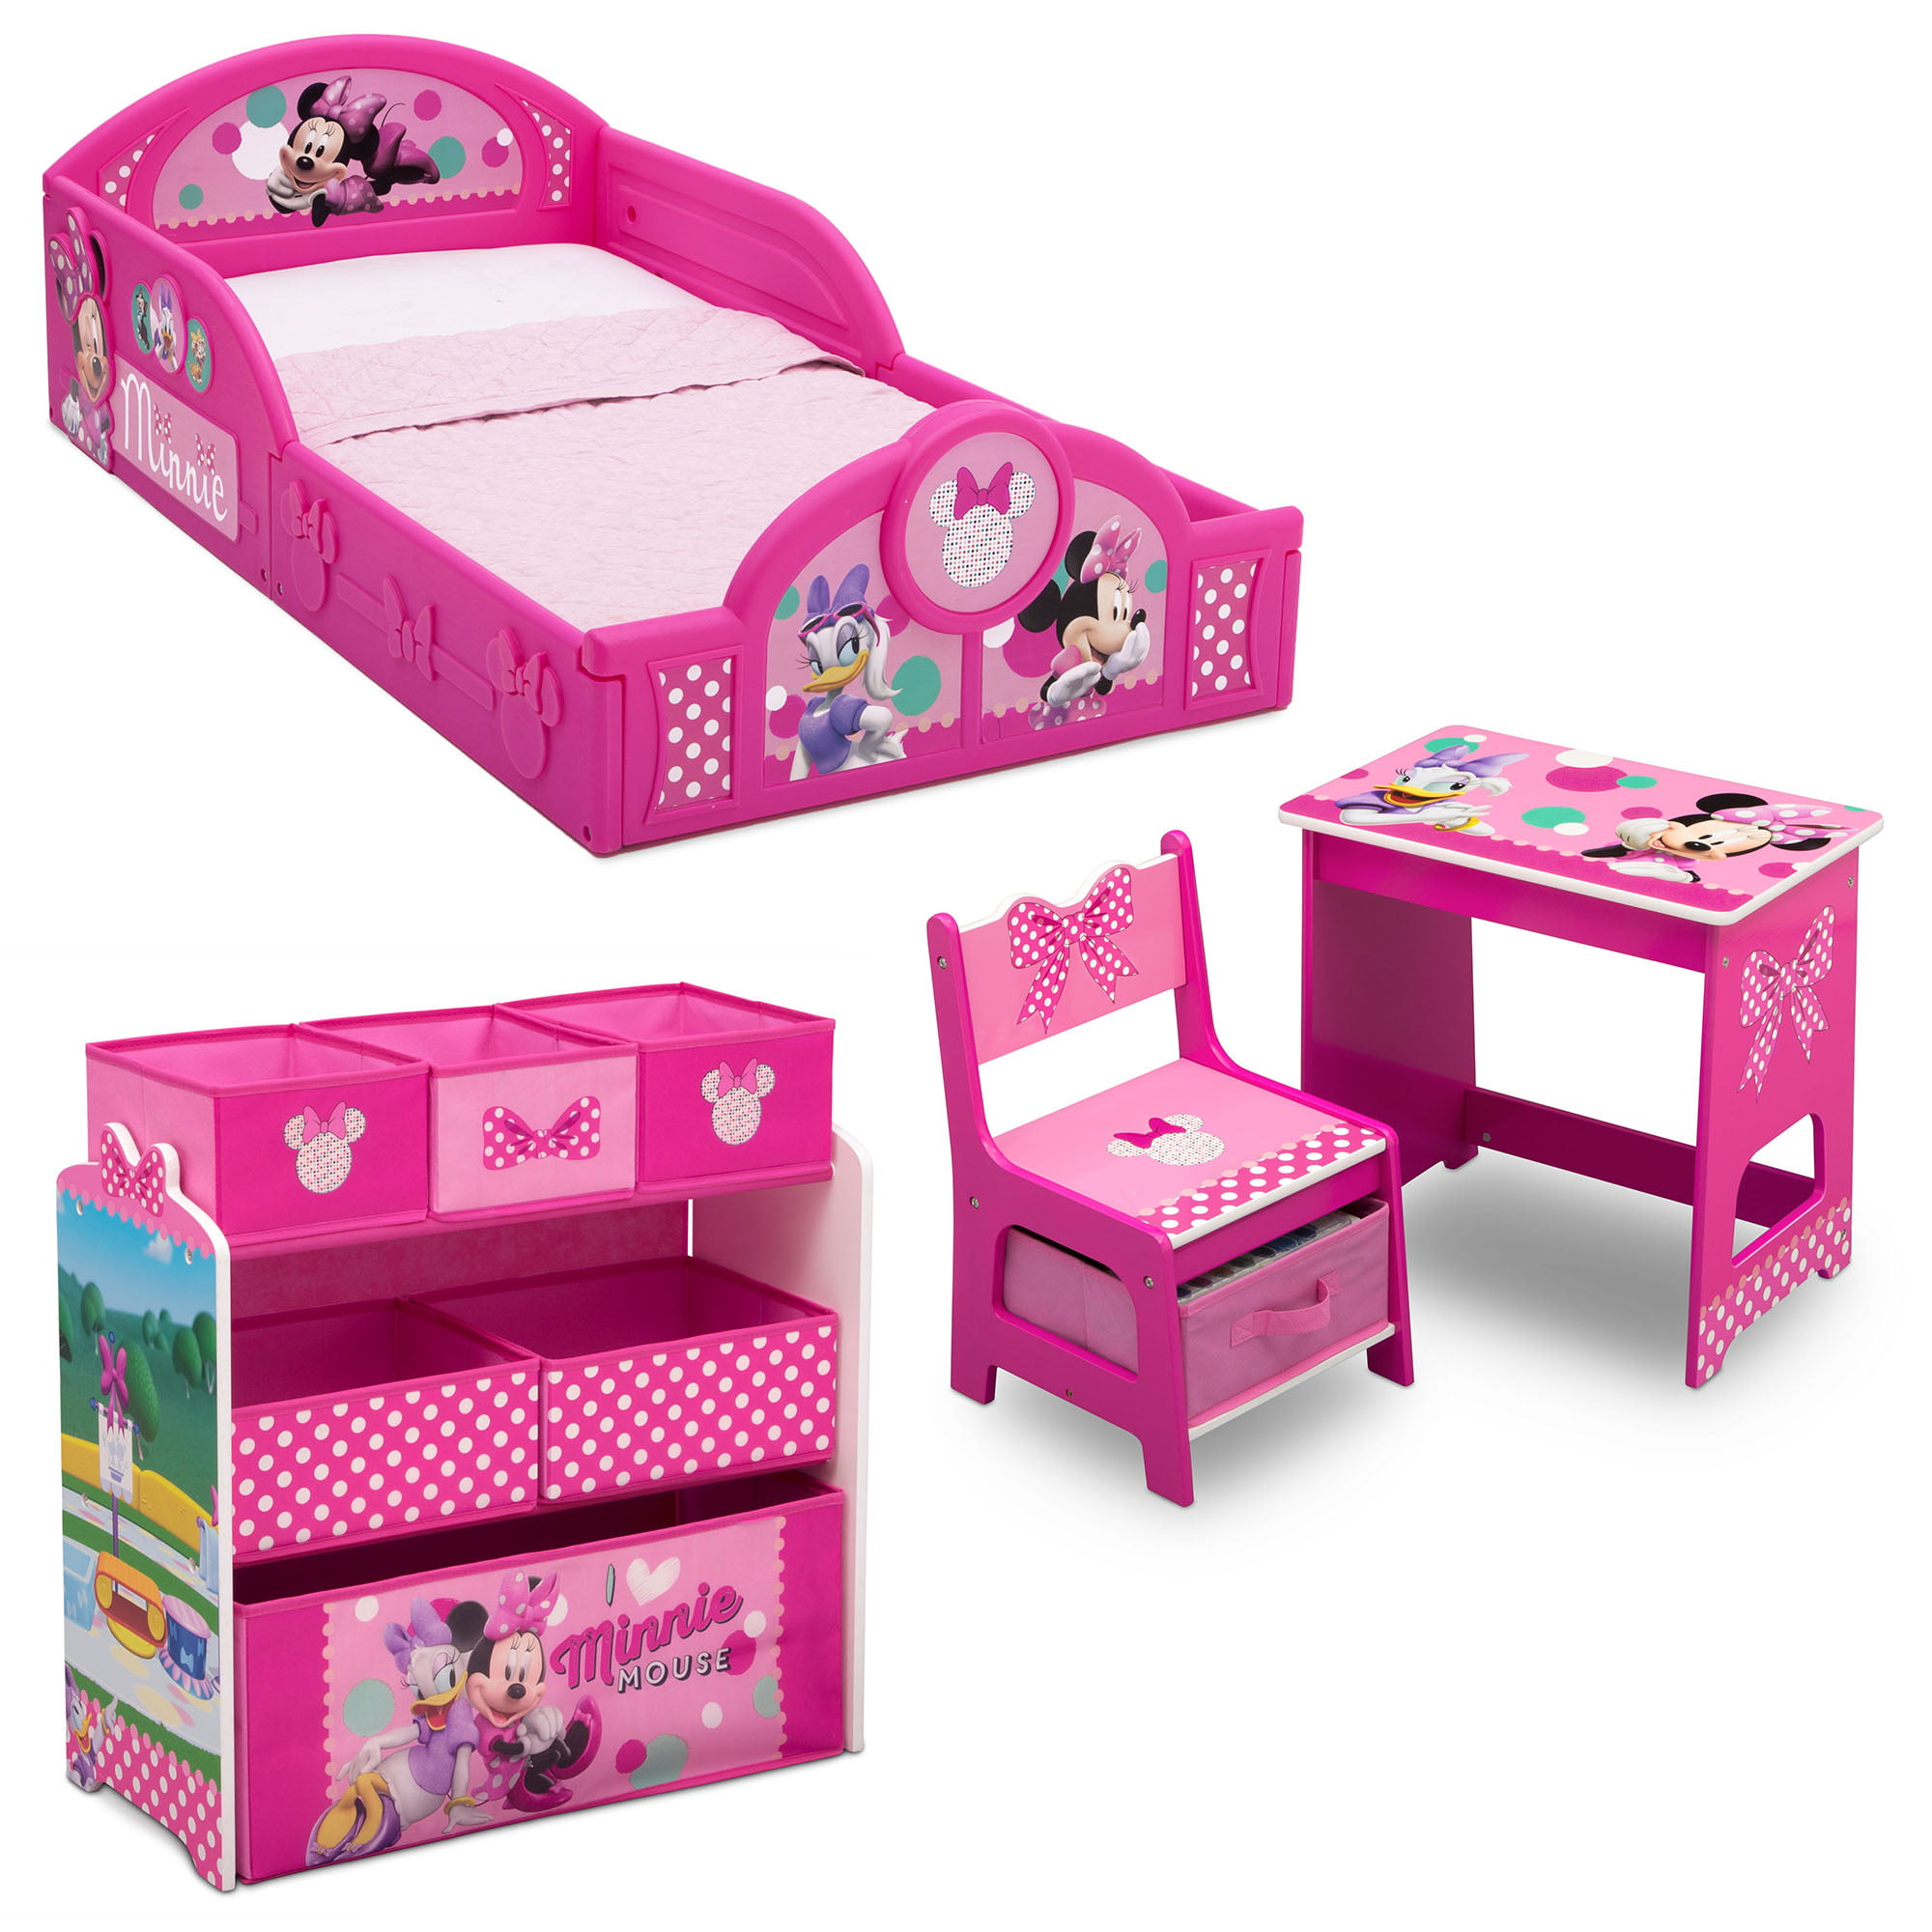 Disney Minnie Mouse 4 Piece Room In A Box Bedroom Set By Delta Children Includes Sleep Play Toddler Bed 6 Bin Design Store Toy Organizer And Desk With Chair Walmart Com Walmart Com